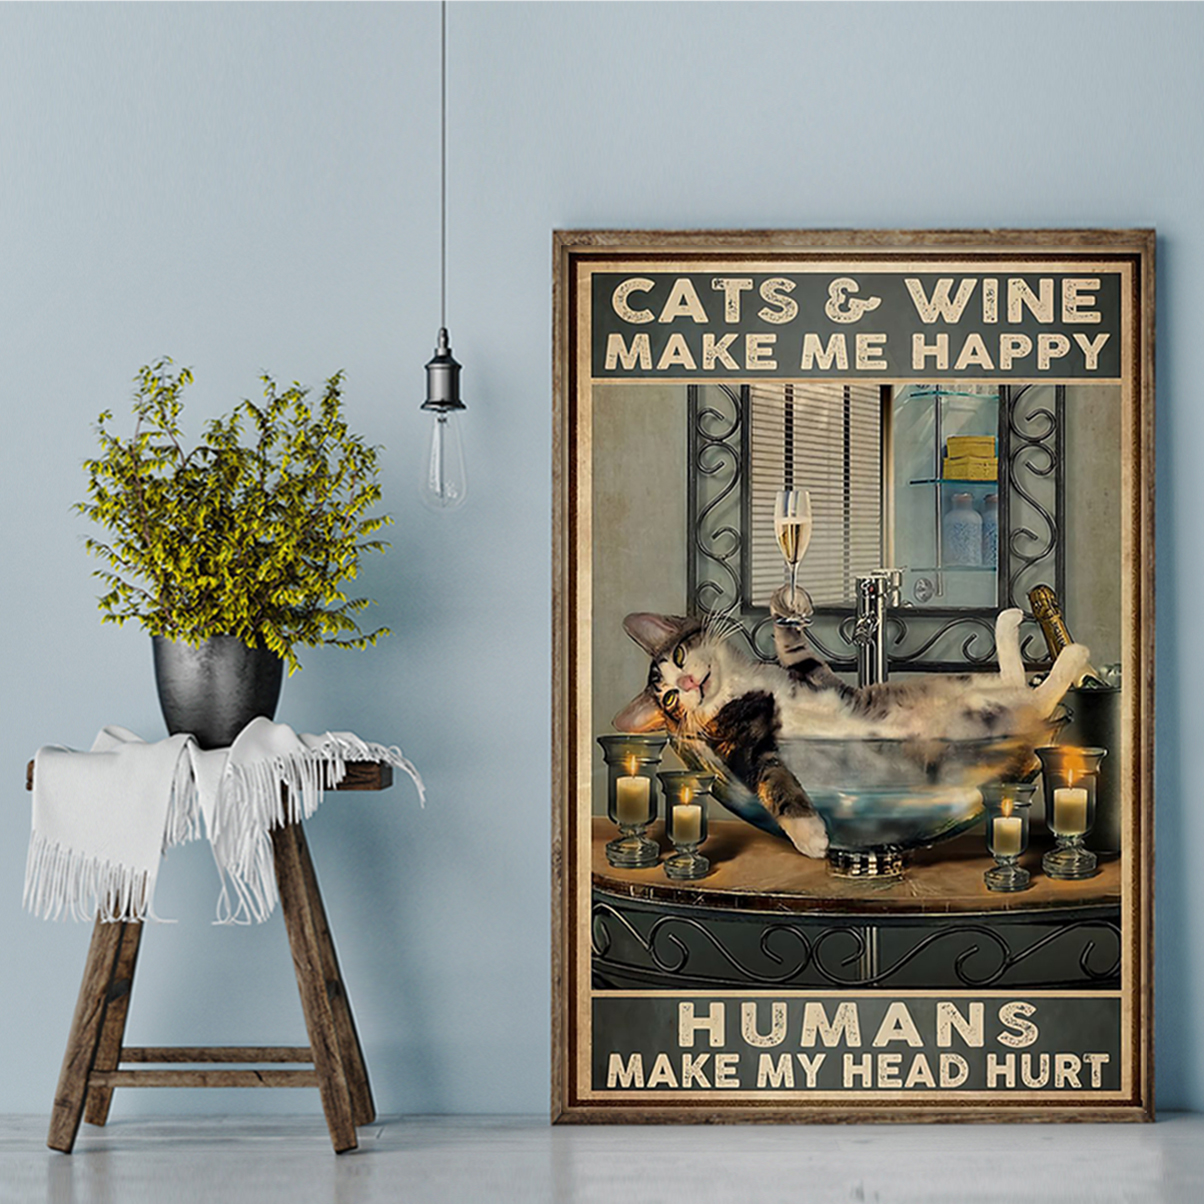 Cats and wine make me happy humans make my head hurt poster A3